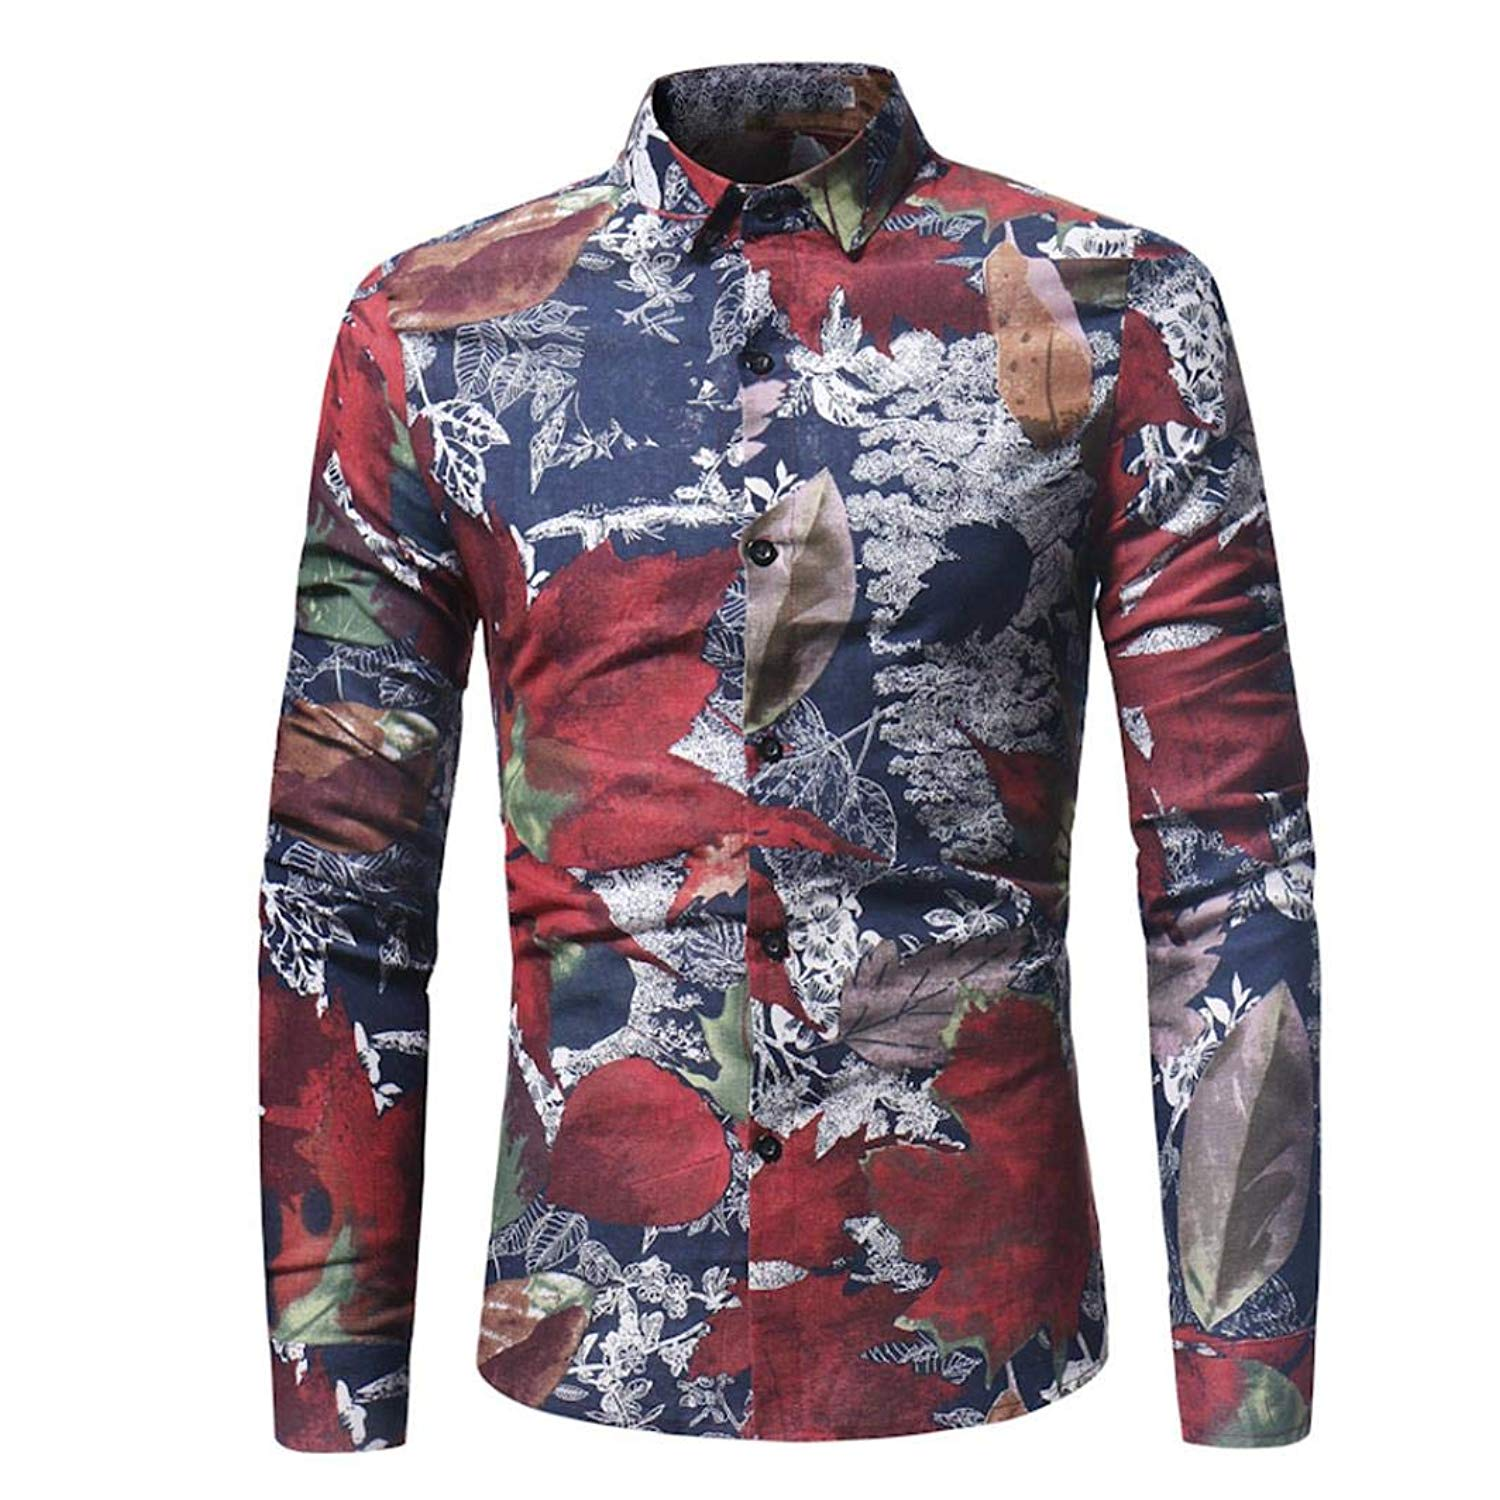 bf623b0b Get Quotations · Men Floral Shirts Maple Leaf Printed Slim Autumn Dress  Button Shirts Tops Zulmaliu(M-